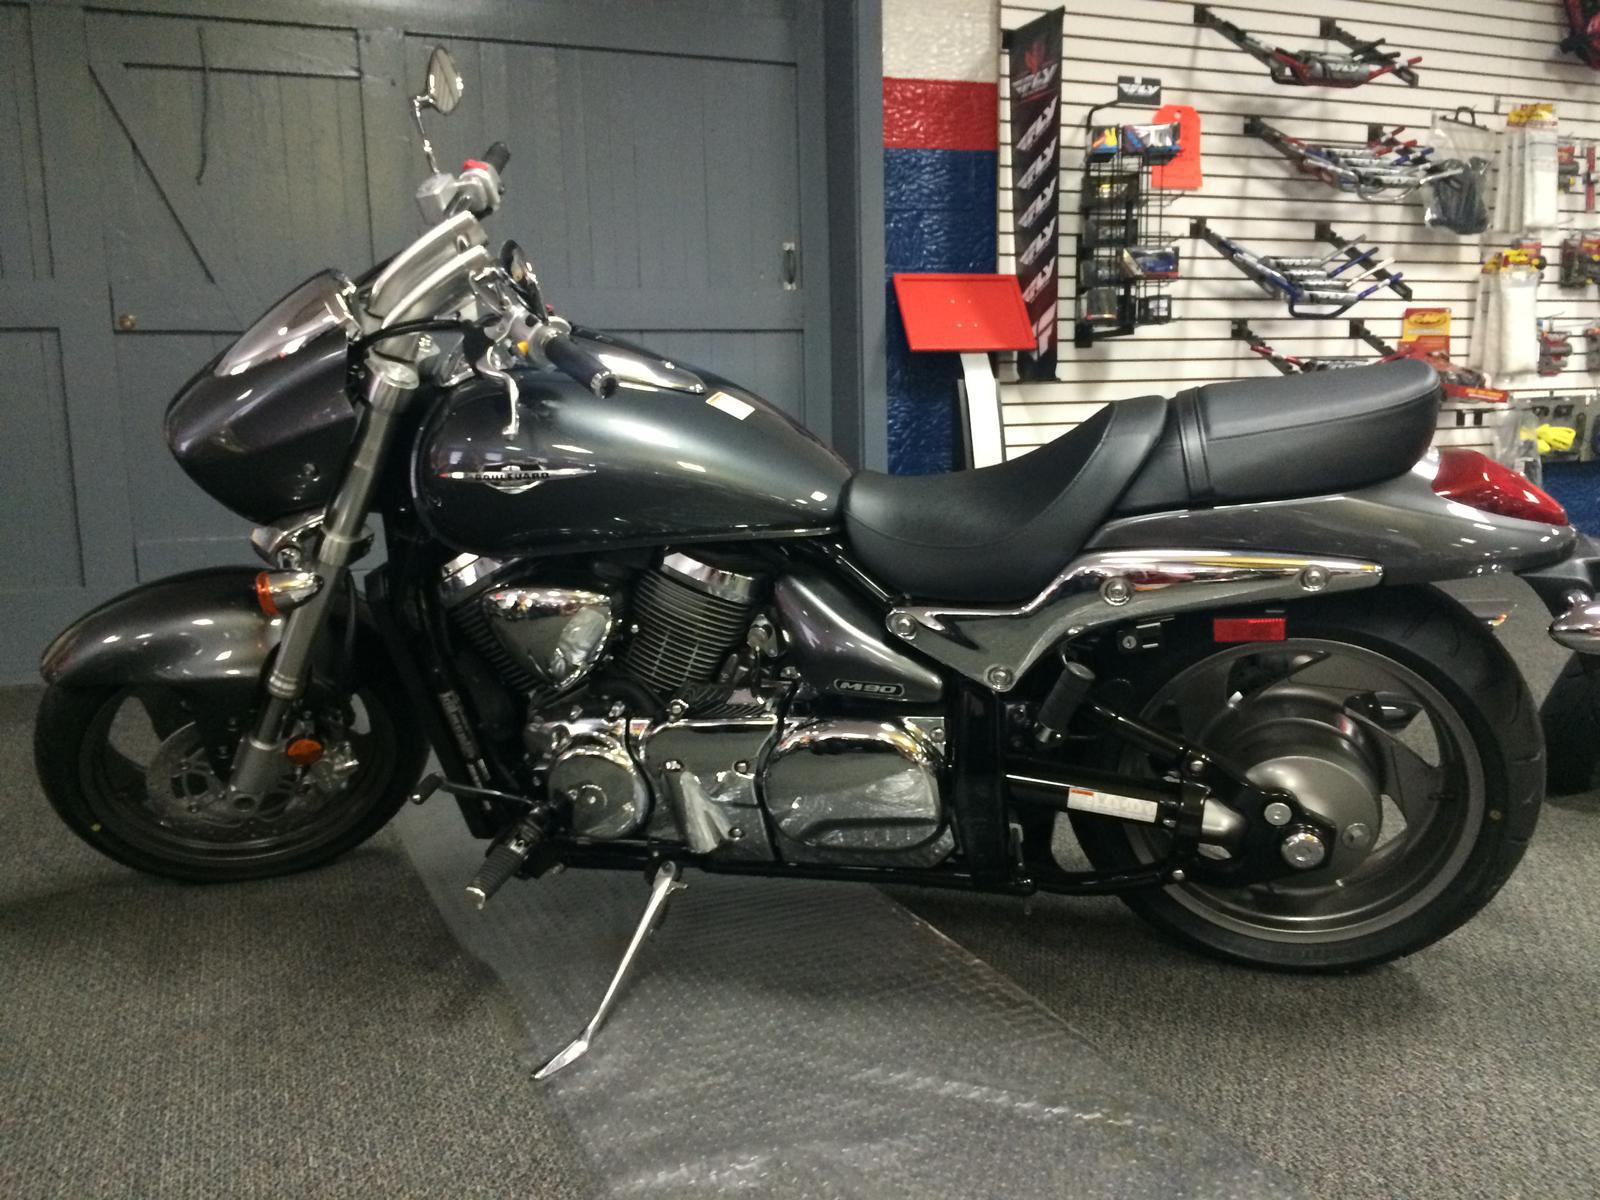 2013 suzuki boulevard m90 for sale in uniontown, pa | parker